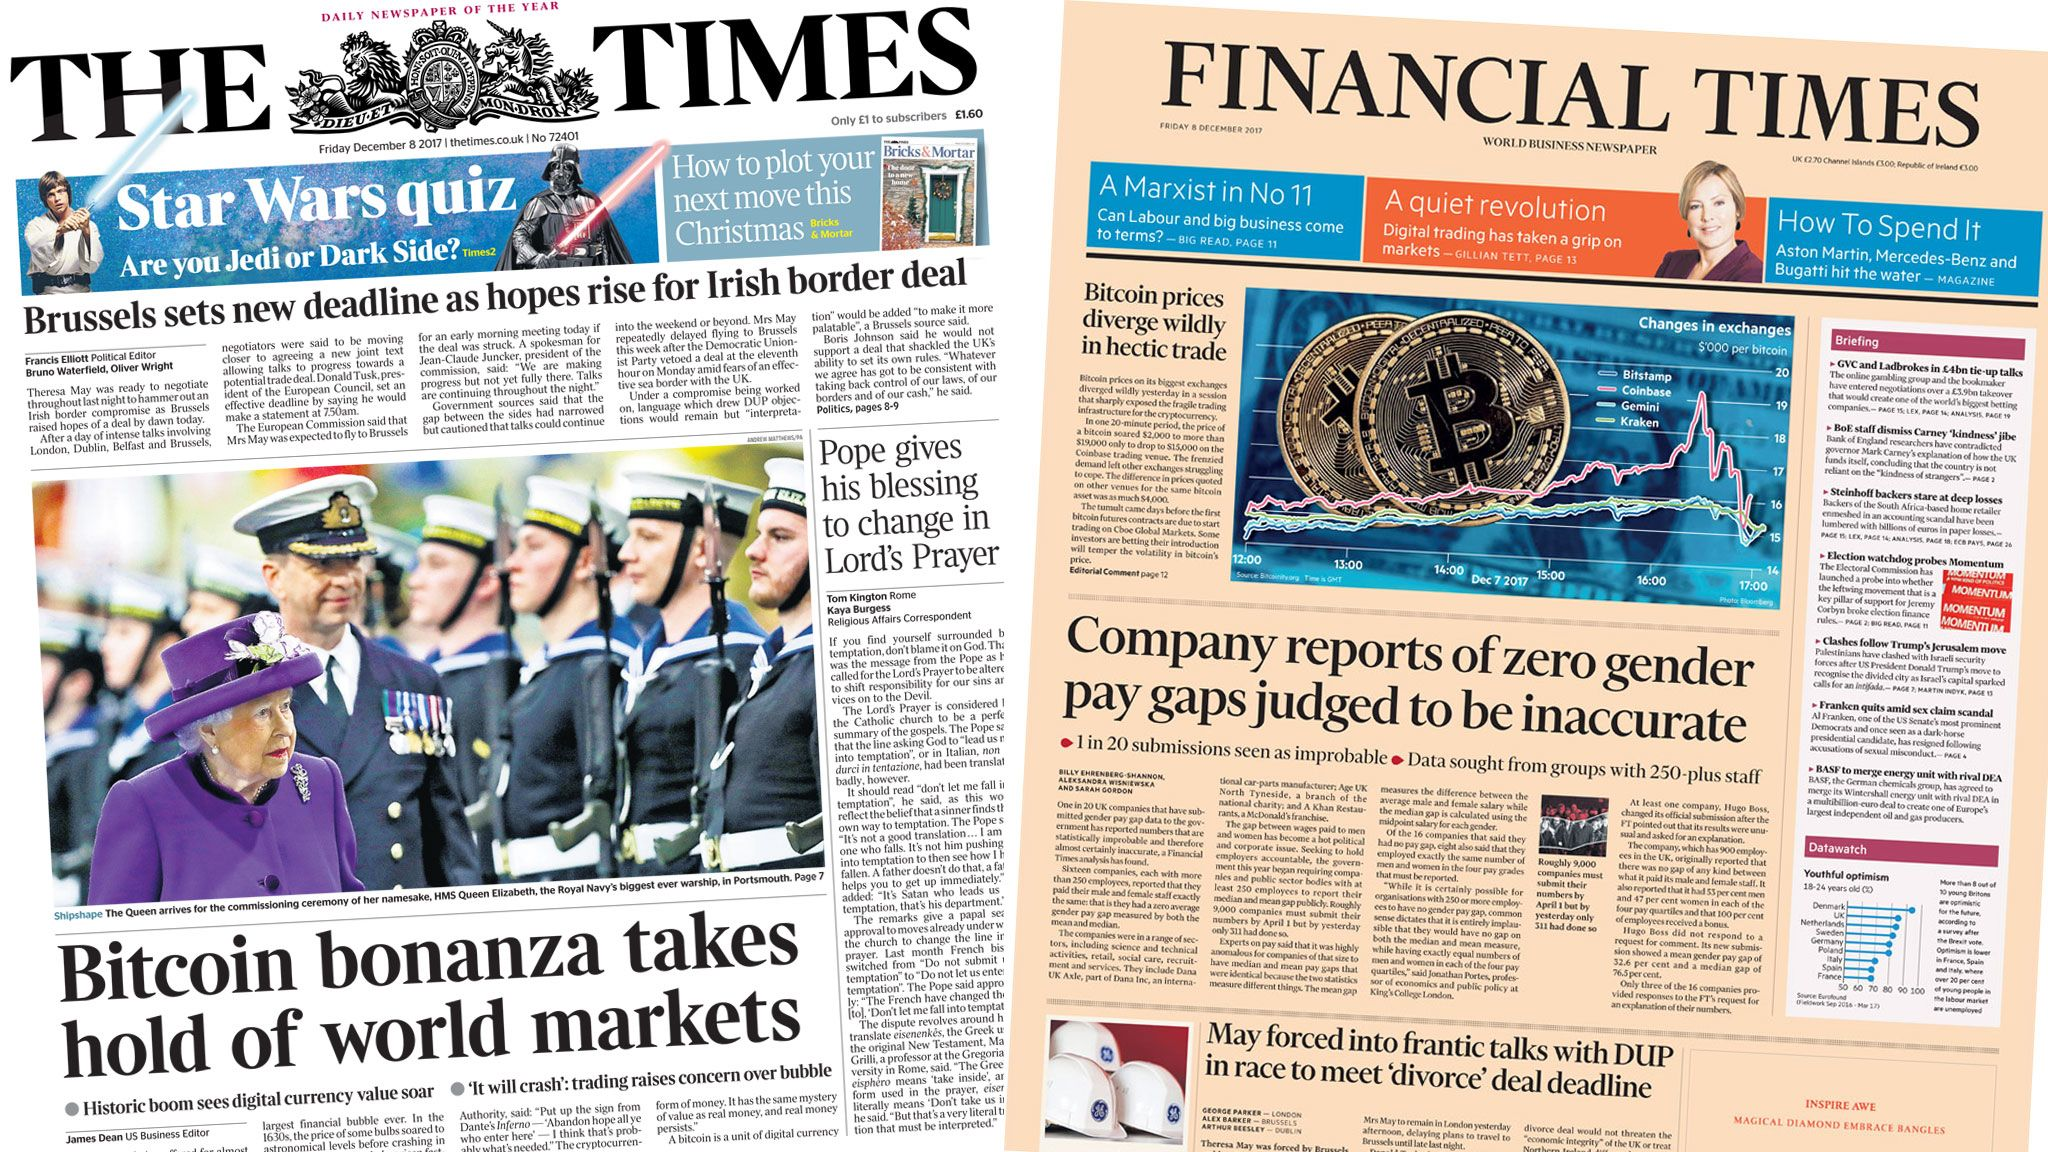 The Times and the Financial Times